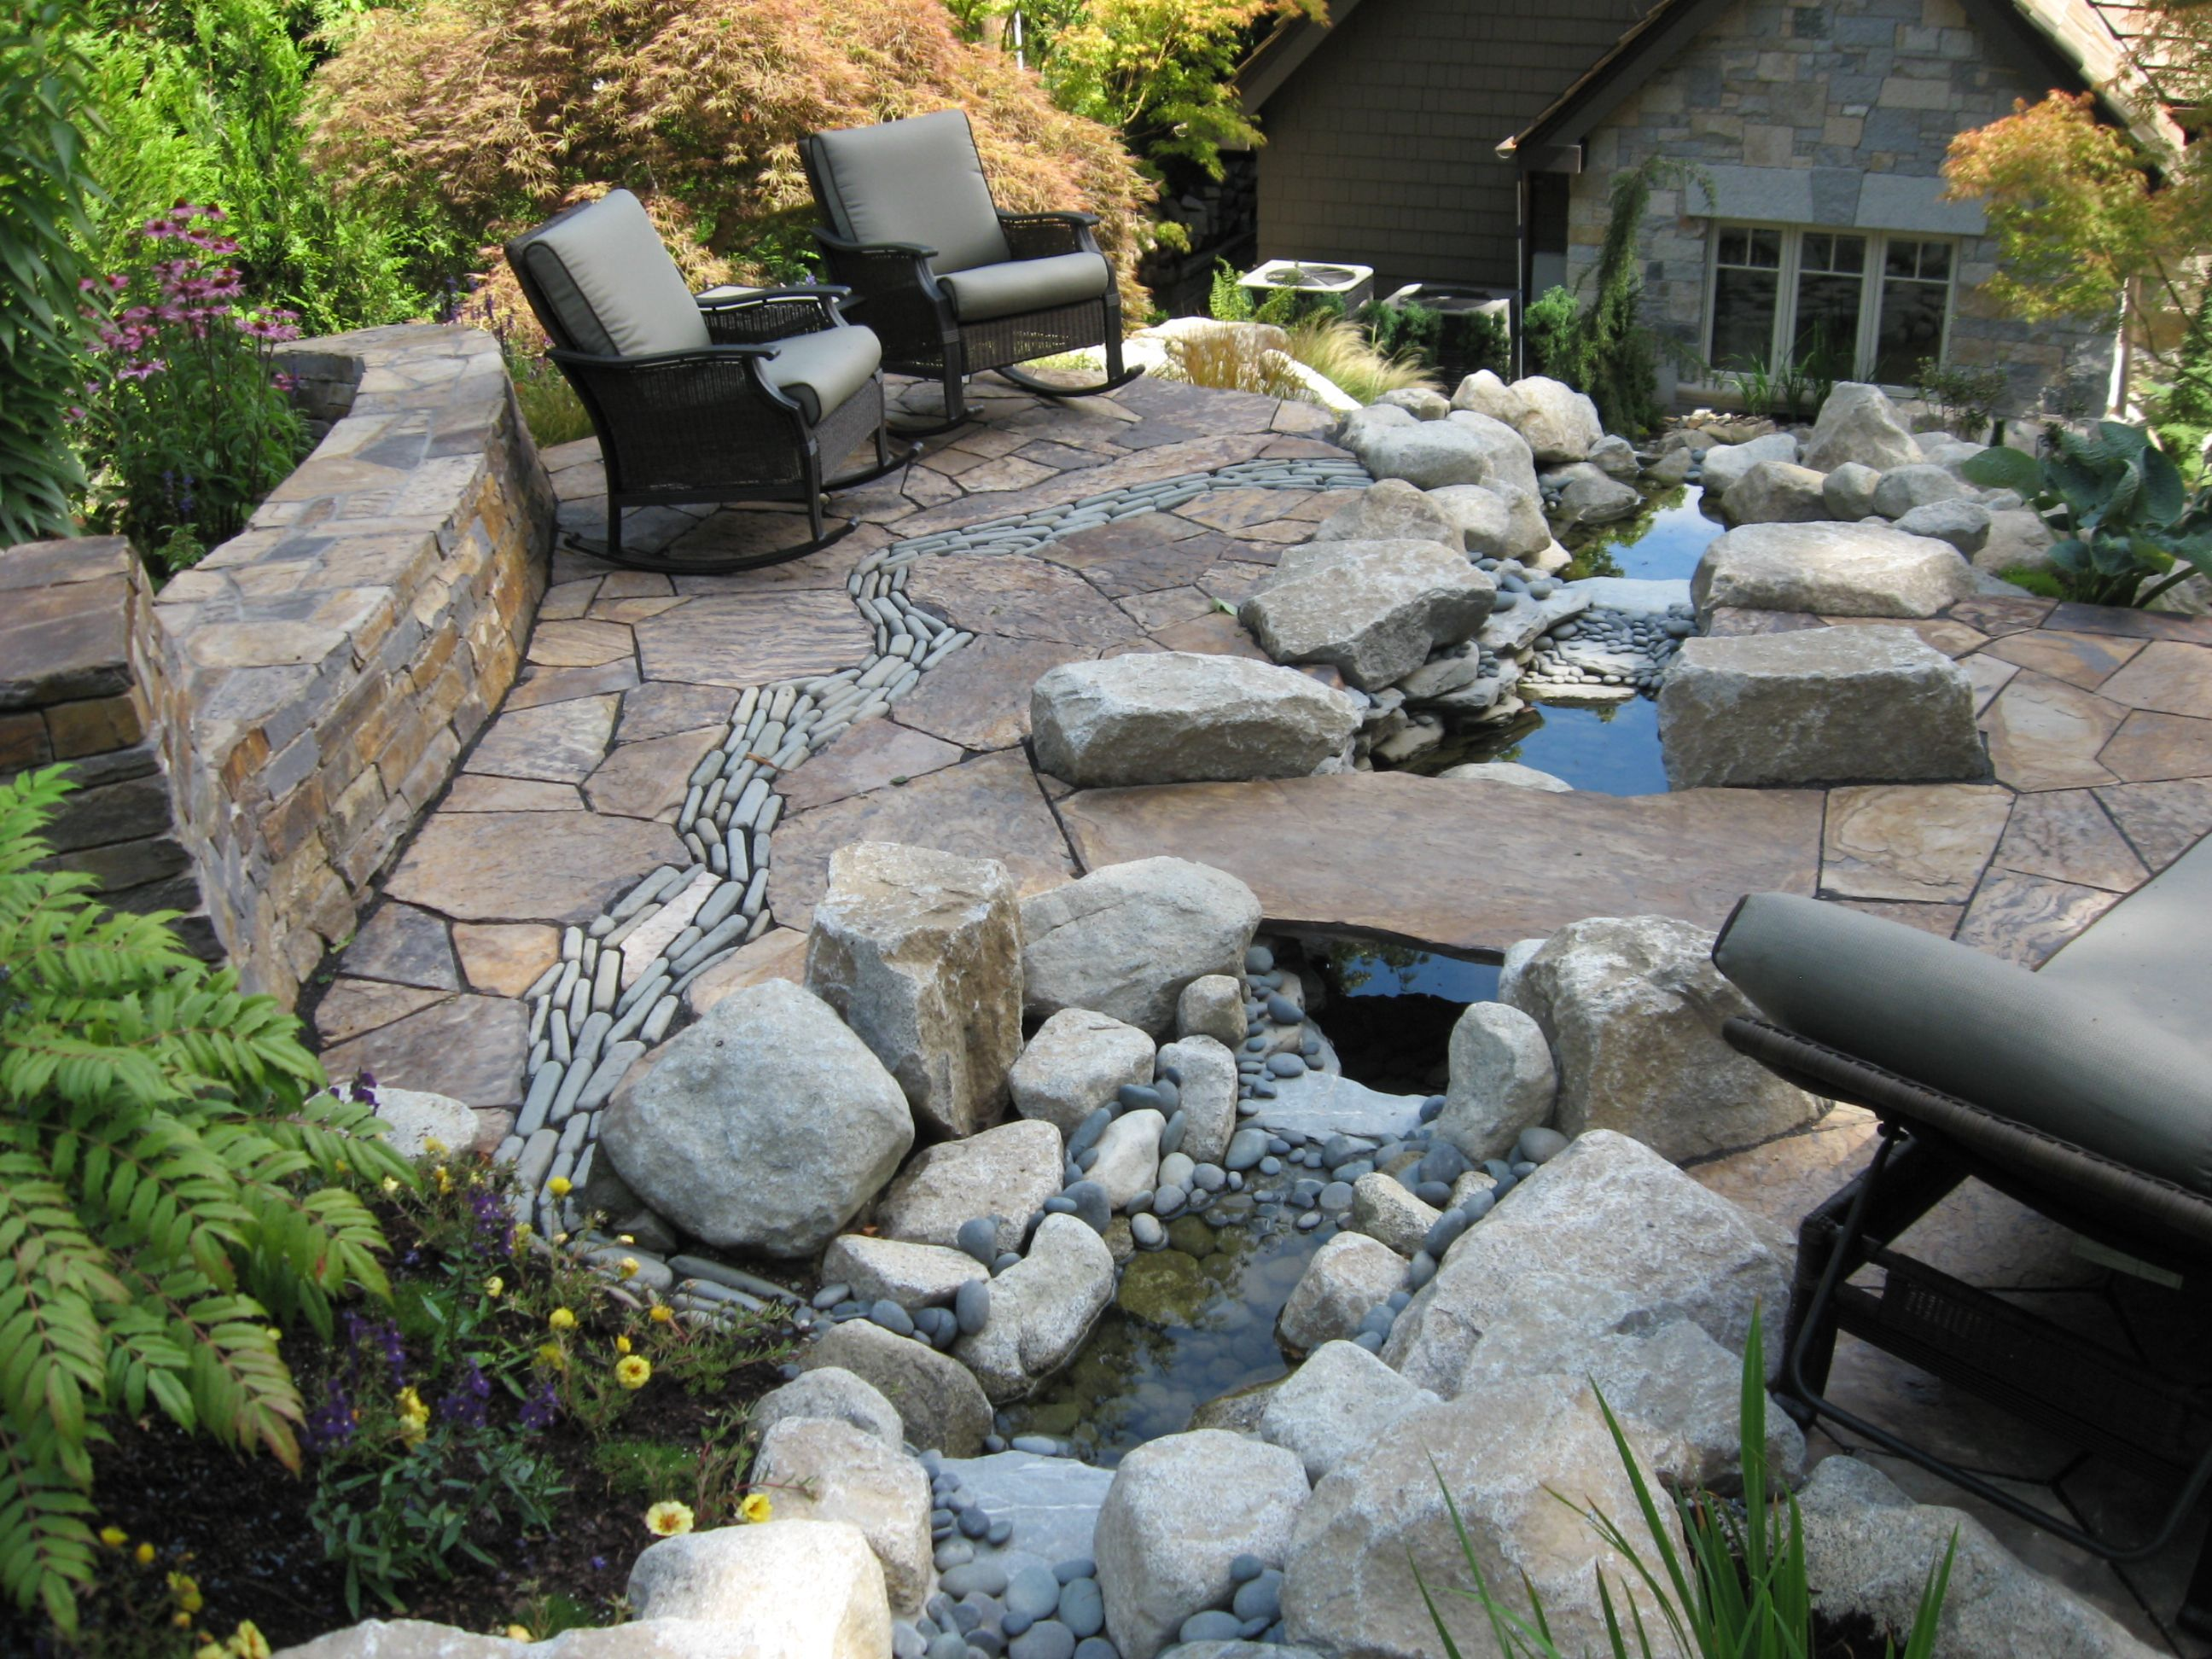 Patio Designs Ideas brilliant outdoor patio design ideasbestartisticinteriorscom Stone Patio Ideas Backyard 20 Creative Patiooutdoor Bar Ideas You Must Try At Your Backyard Youll